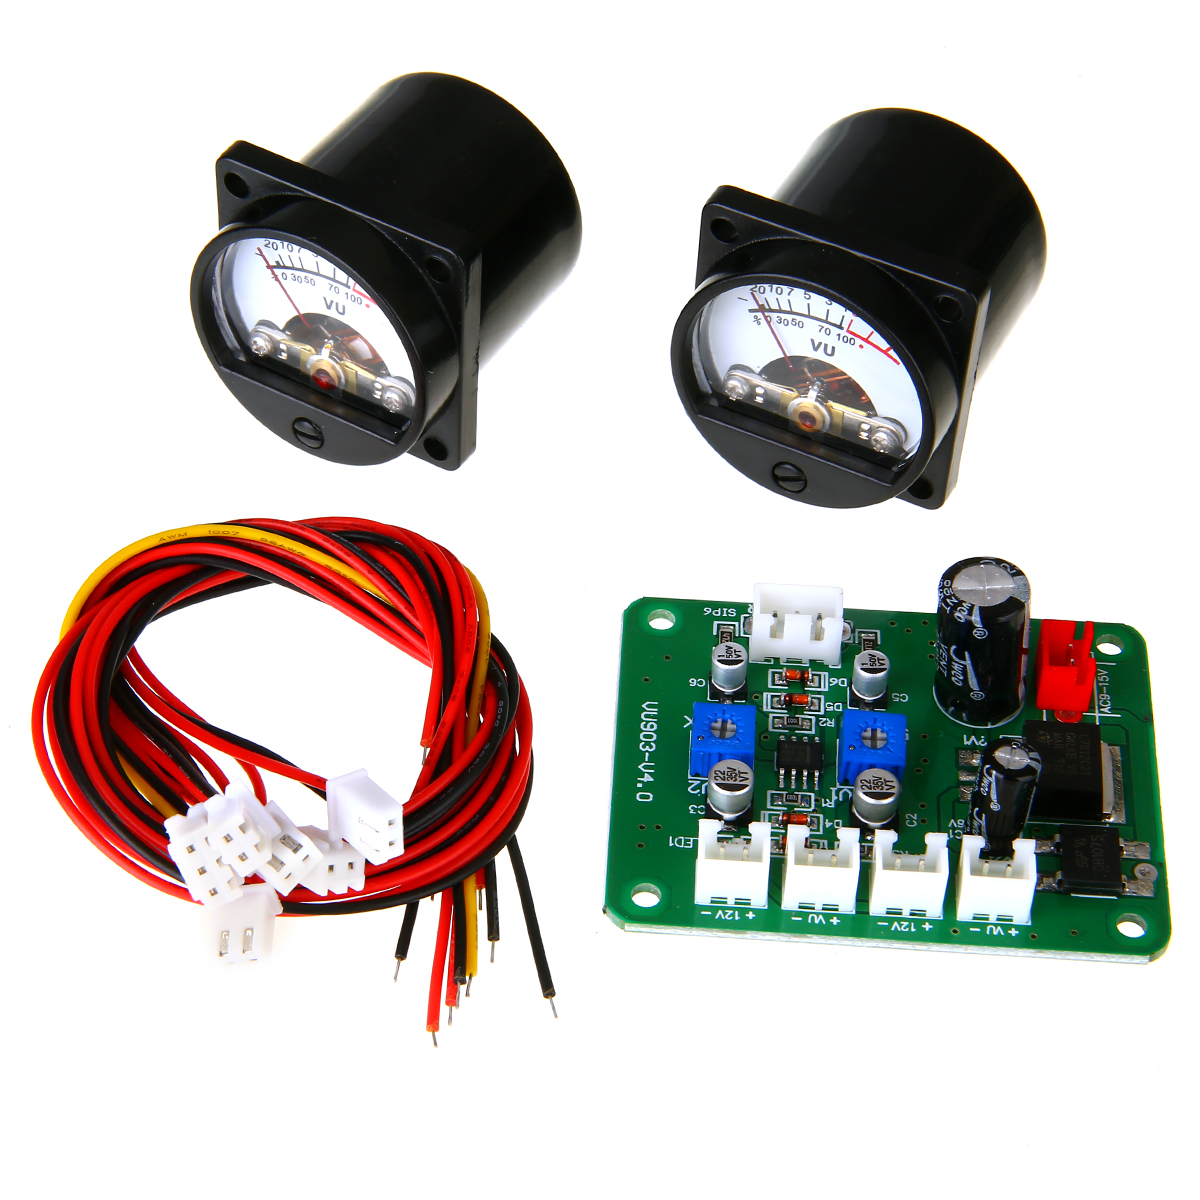 2pcs 10-12V Analog VU Panel Meter 500UA Warm Back Light Recording Level Meter + Durable Driver Module Board + Cable Mayitr2pcs 10-12V Analog VU Panel Meter 500UA Warm Back Light Recording Level Meter + Durable Driver Module Board + Cable Mayitr